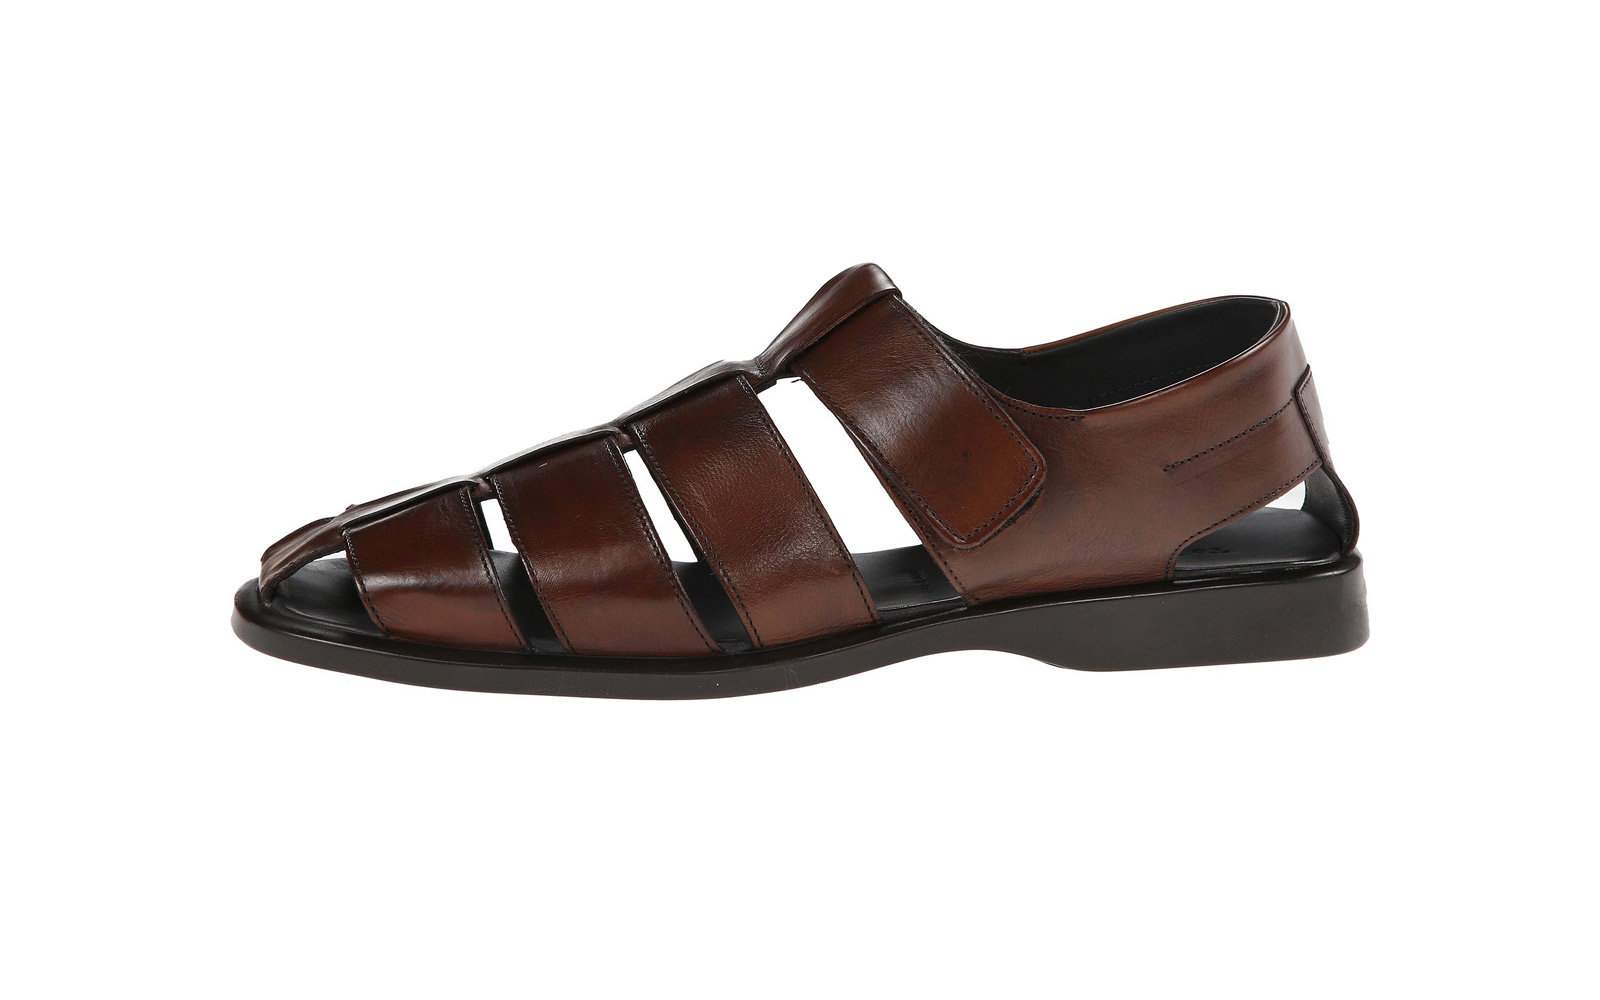 d198fa6b84547 The Best Men s Sandals to Pack for Your Next Vacation